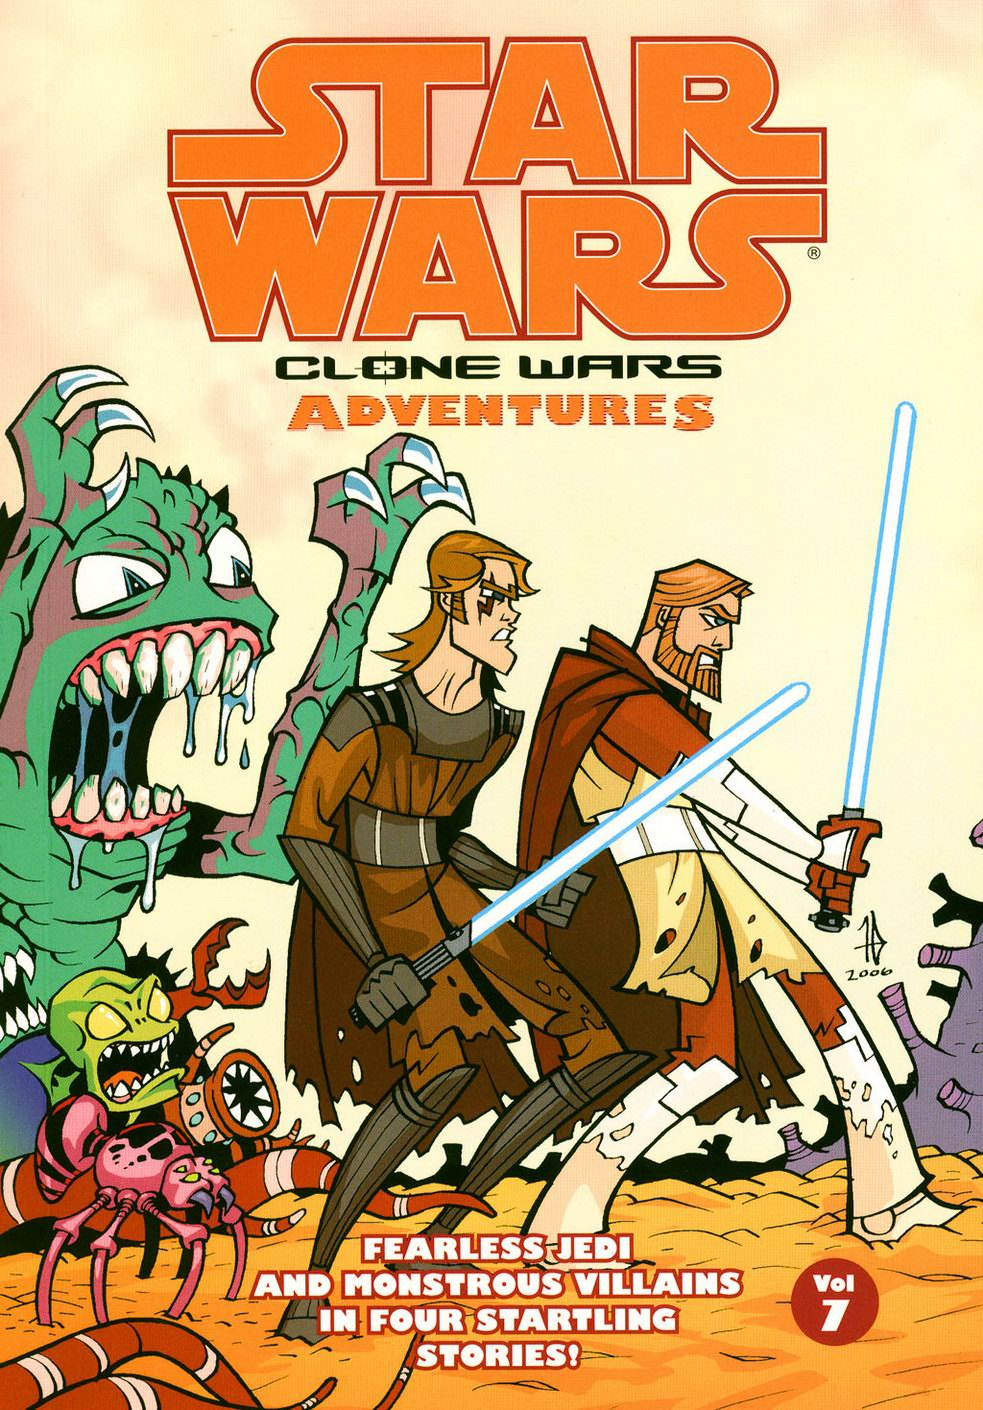 Star Wars The Clone Wars Monsters Star Wars Clone Wars